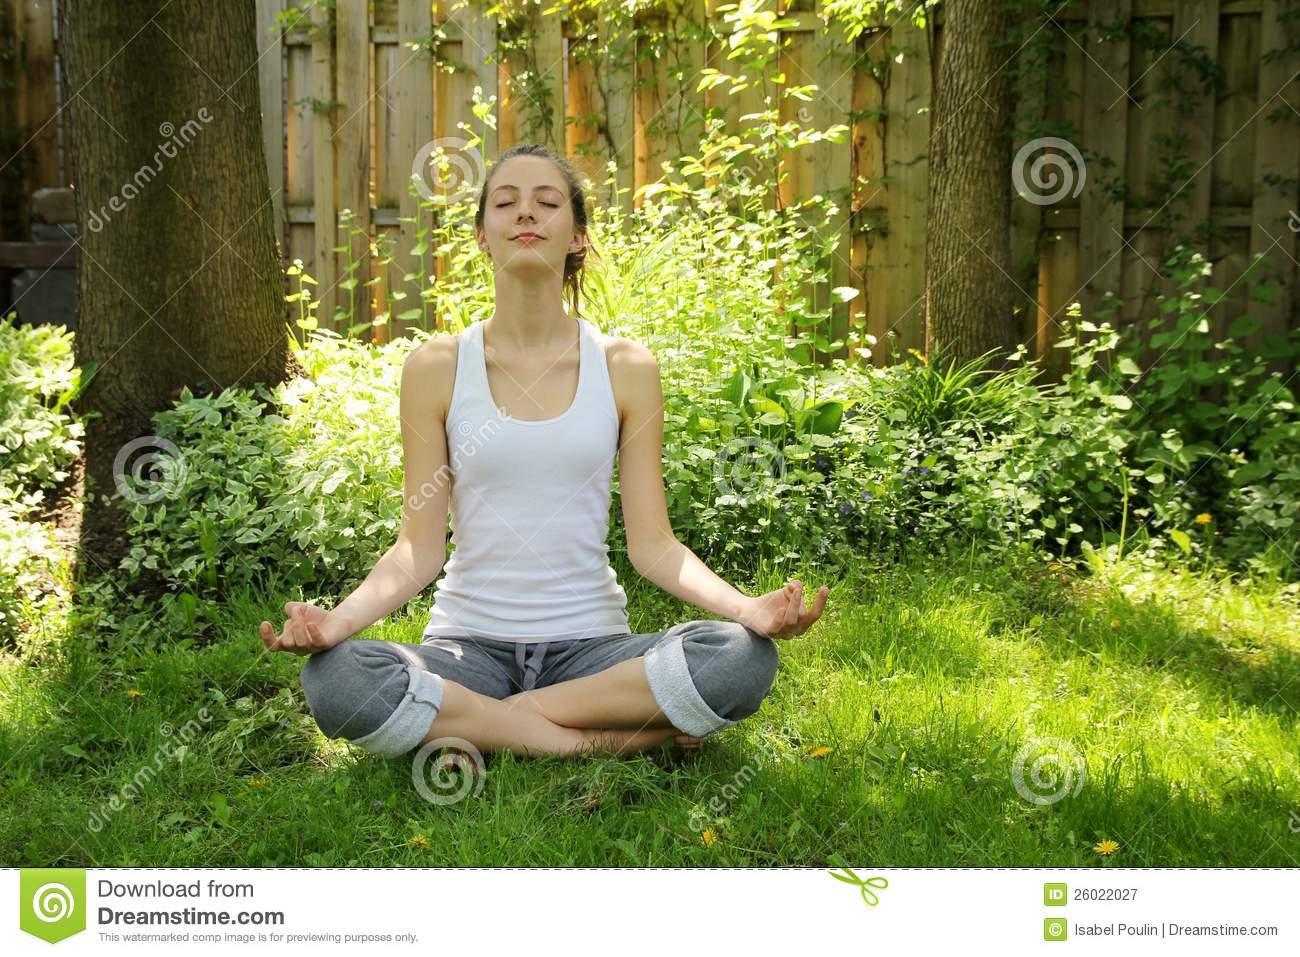 Teenager Relaxing And Doing Yoga In A Nice Quiet Garden